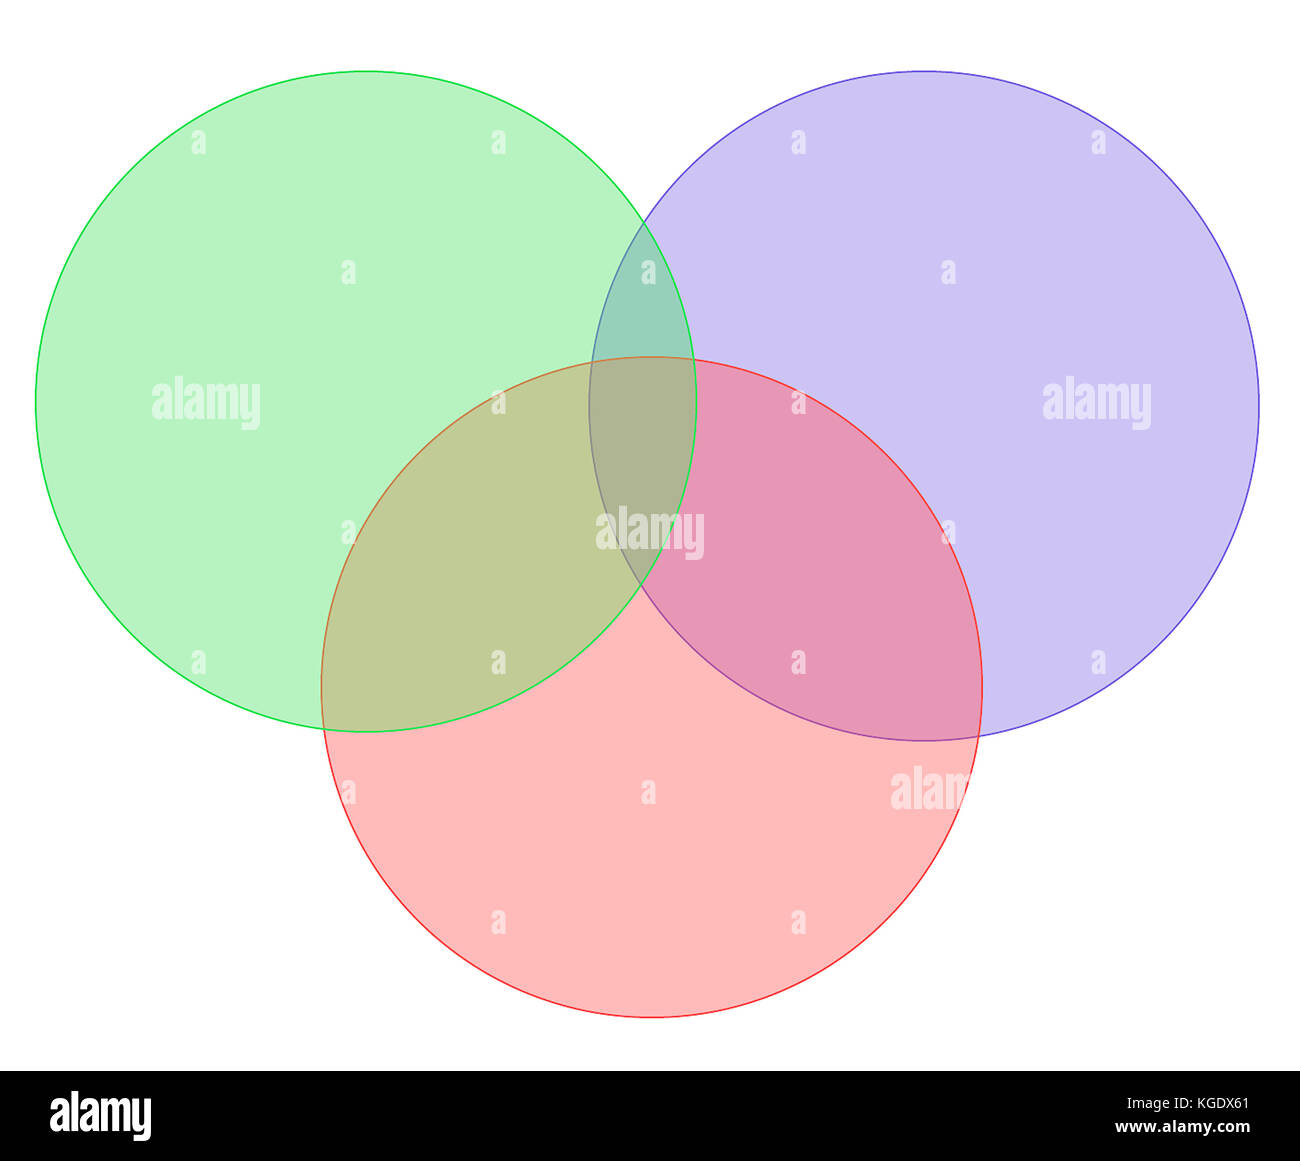 hight resolution of 3 colored venn diagram on white background